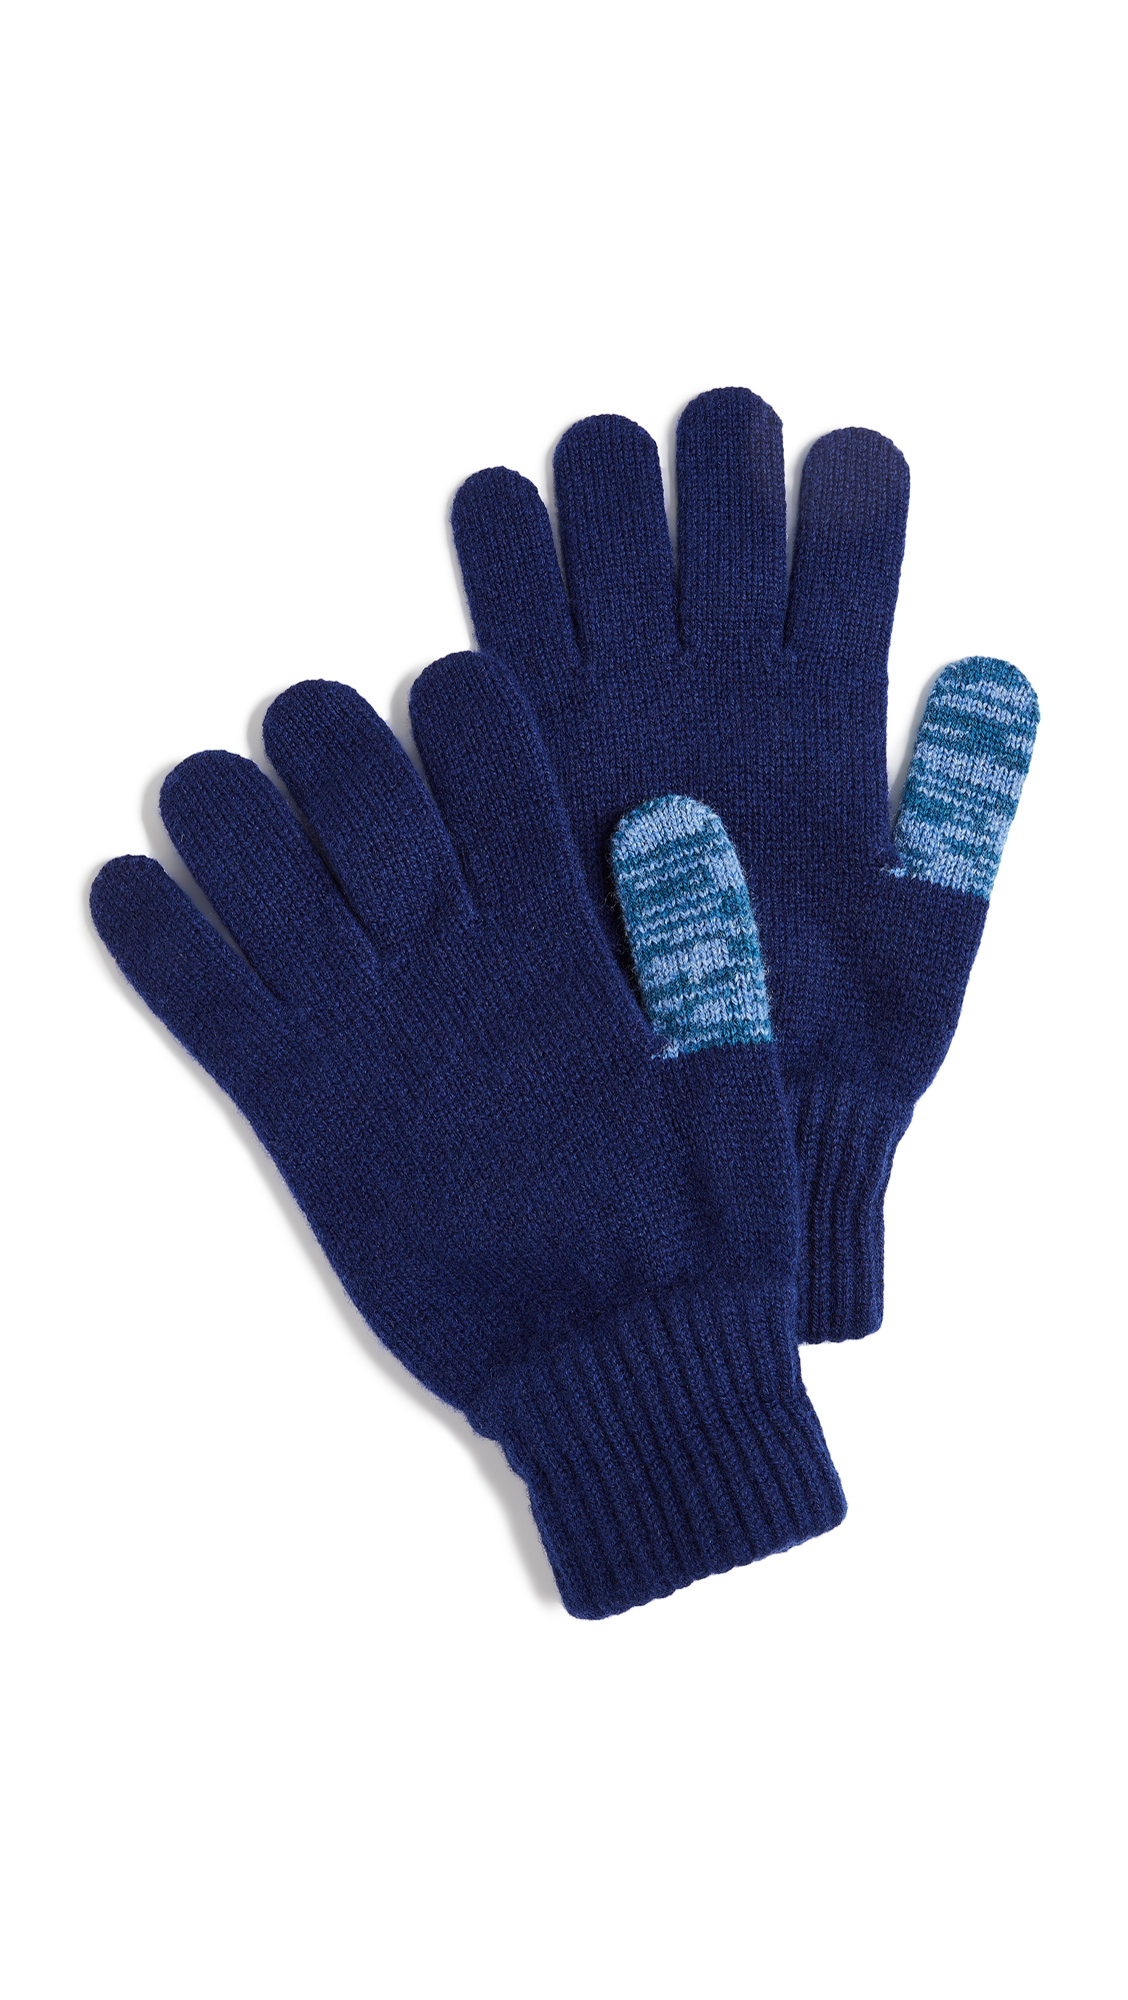 PAUL SMITH Twisted Thumb Gloves in Blue